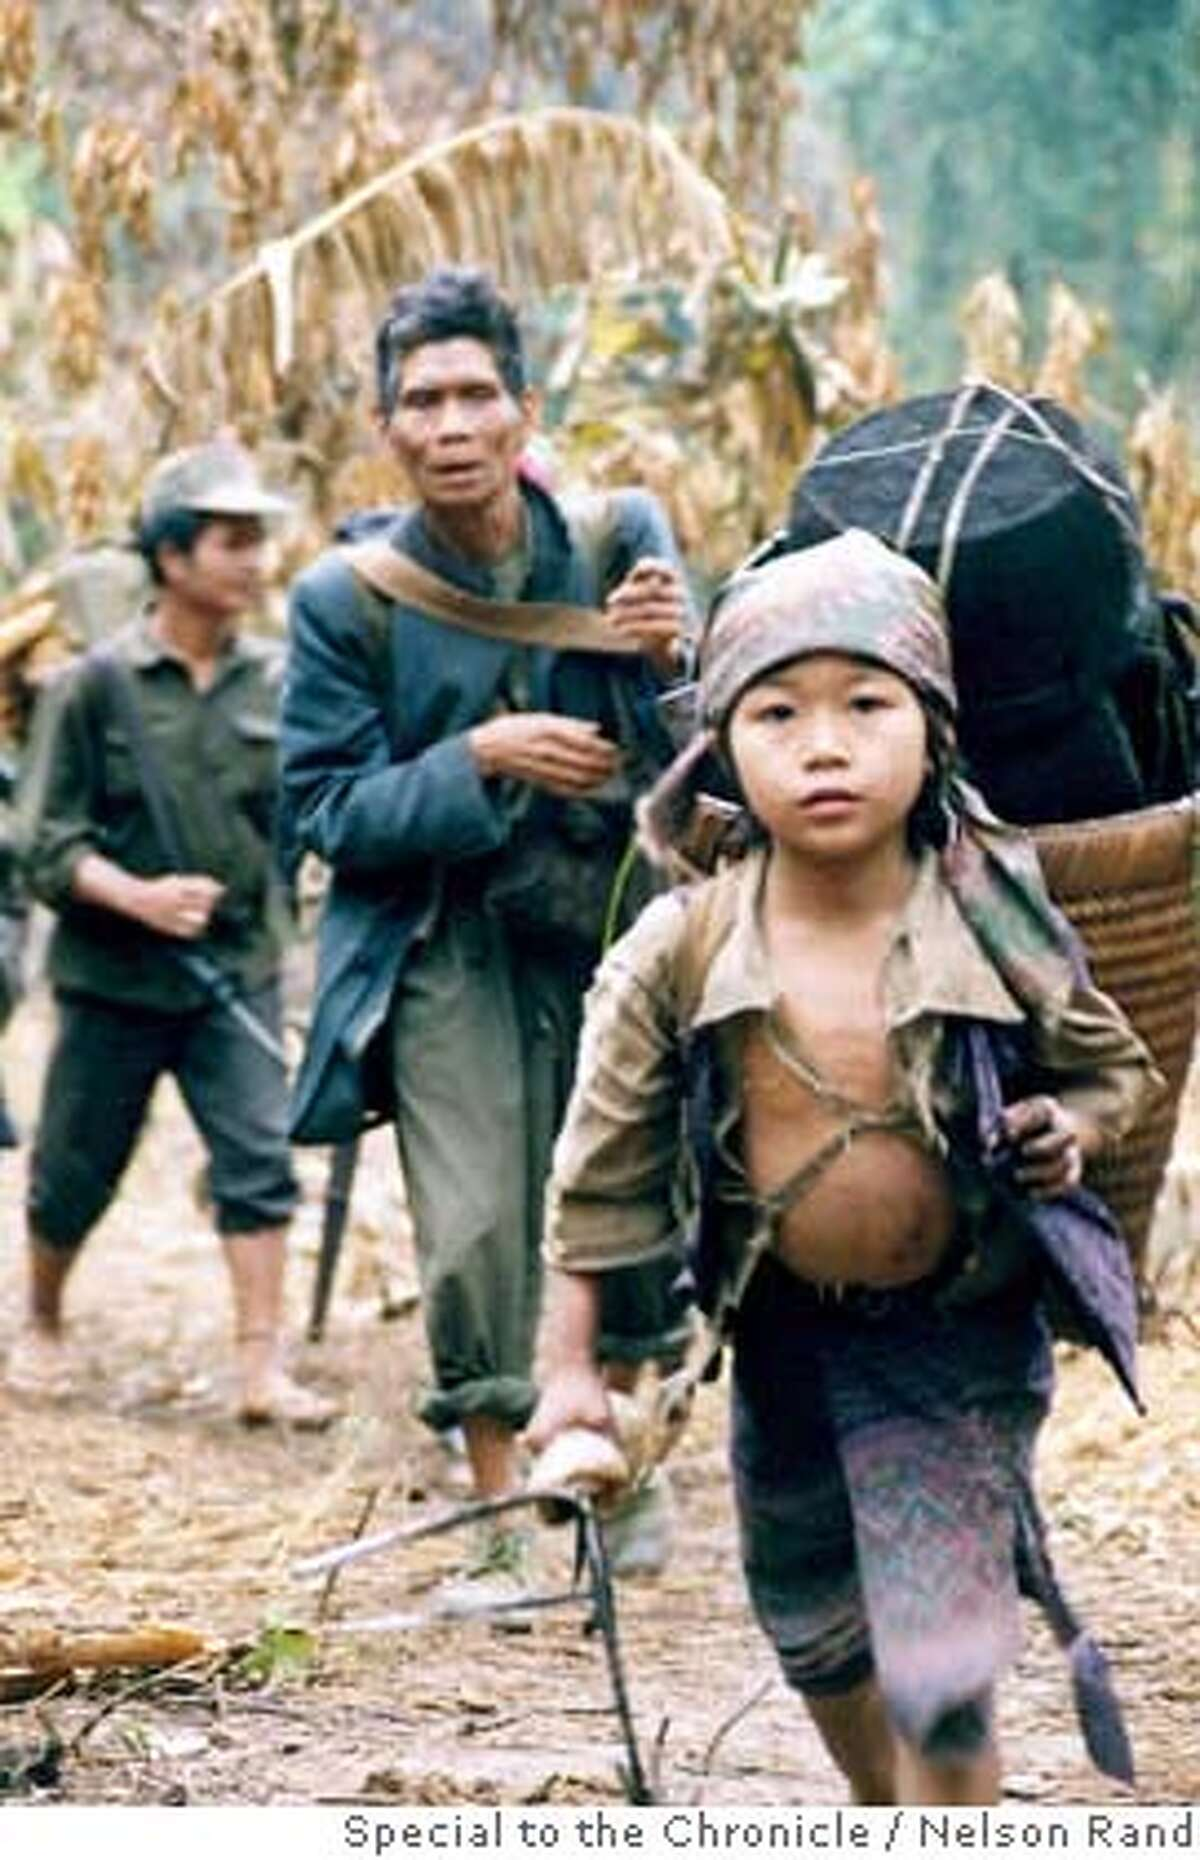 A family walks through the jungle as the group�relocates to avoid Laotian soldiers in the area last month. PHOTO CREDIT: NELSON RAND/SPECIAL TO THE CHRONICLE ONE-TIME USE ONLY!